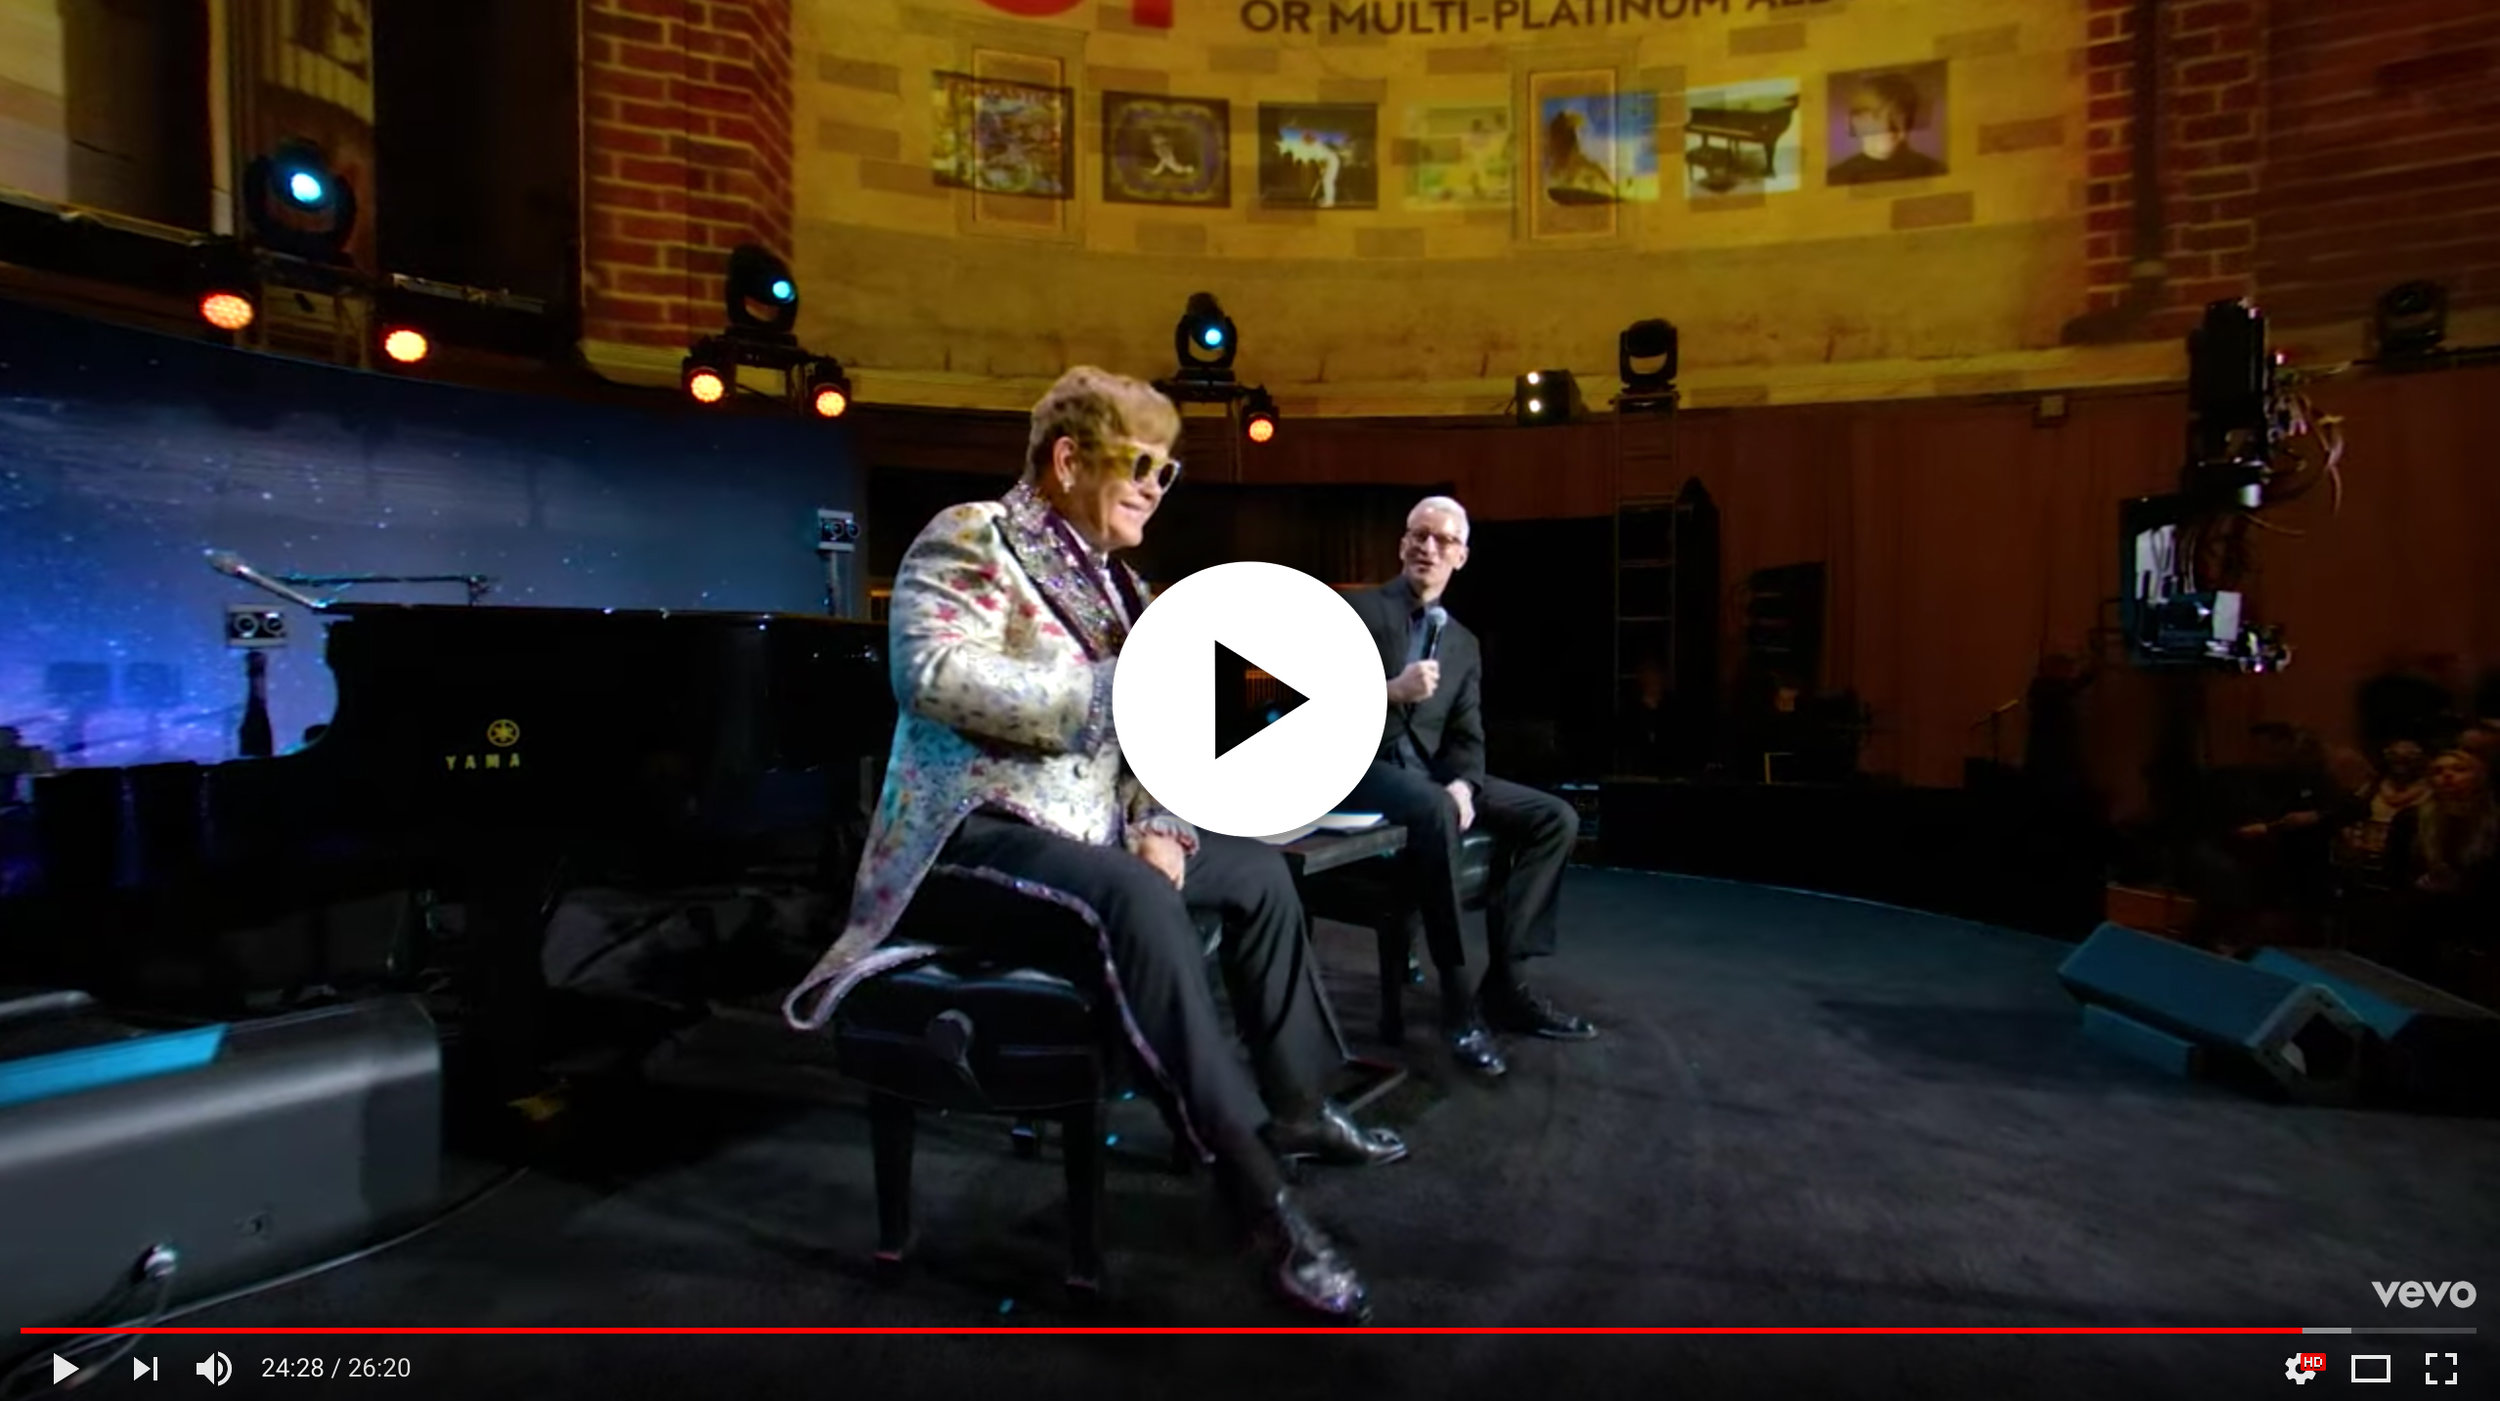 Elton John launched his Farewell Yellow Brick Road tour at Gotham Hall, which featured an immersive VR experience and a conversation with CNN's Anderson Cooper.